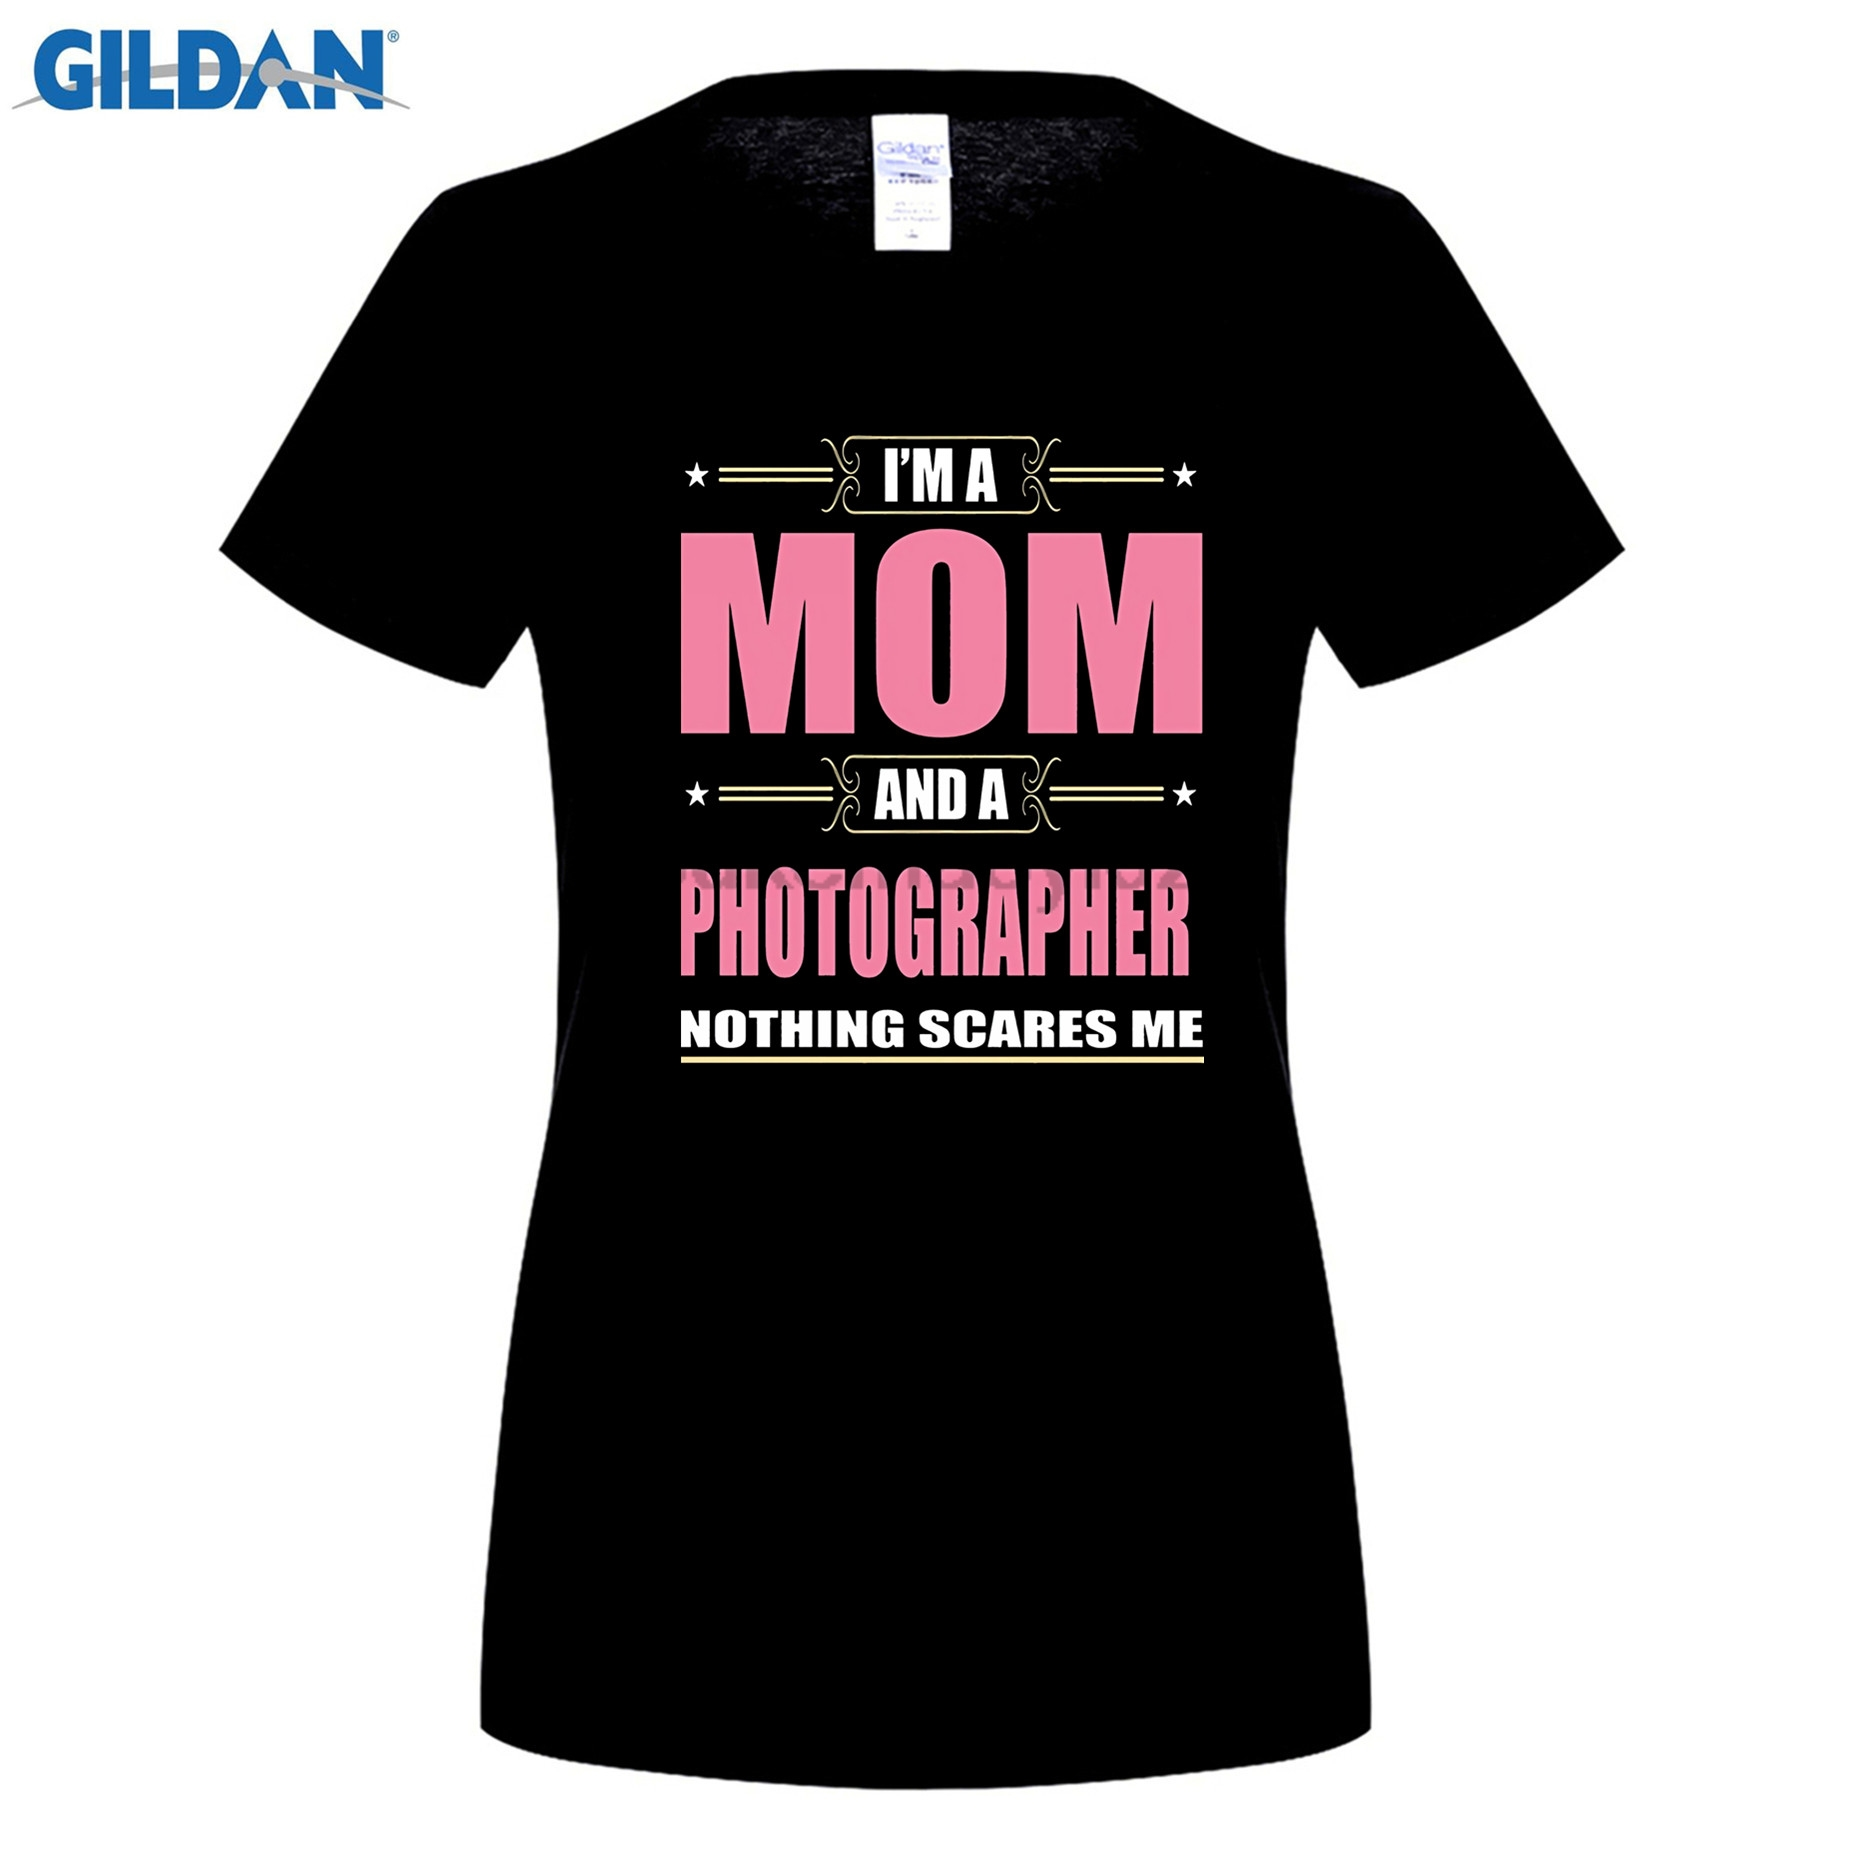 GILDAN Photographer MOM T shirt Christmas Gifts For Mom for woman